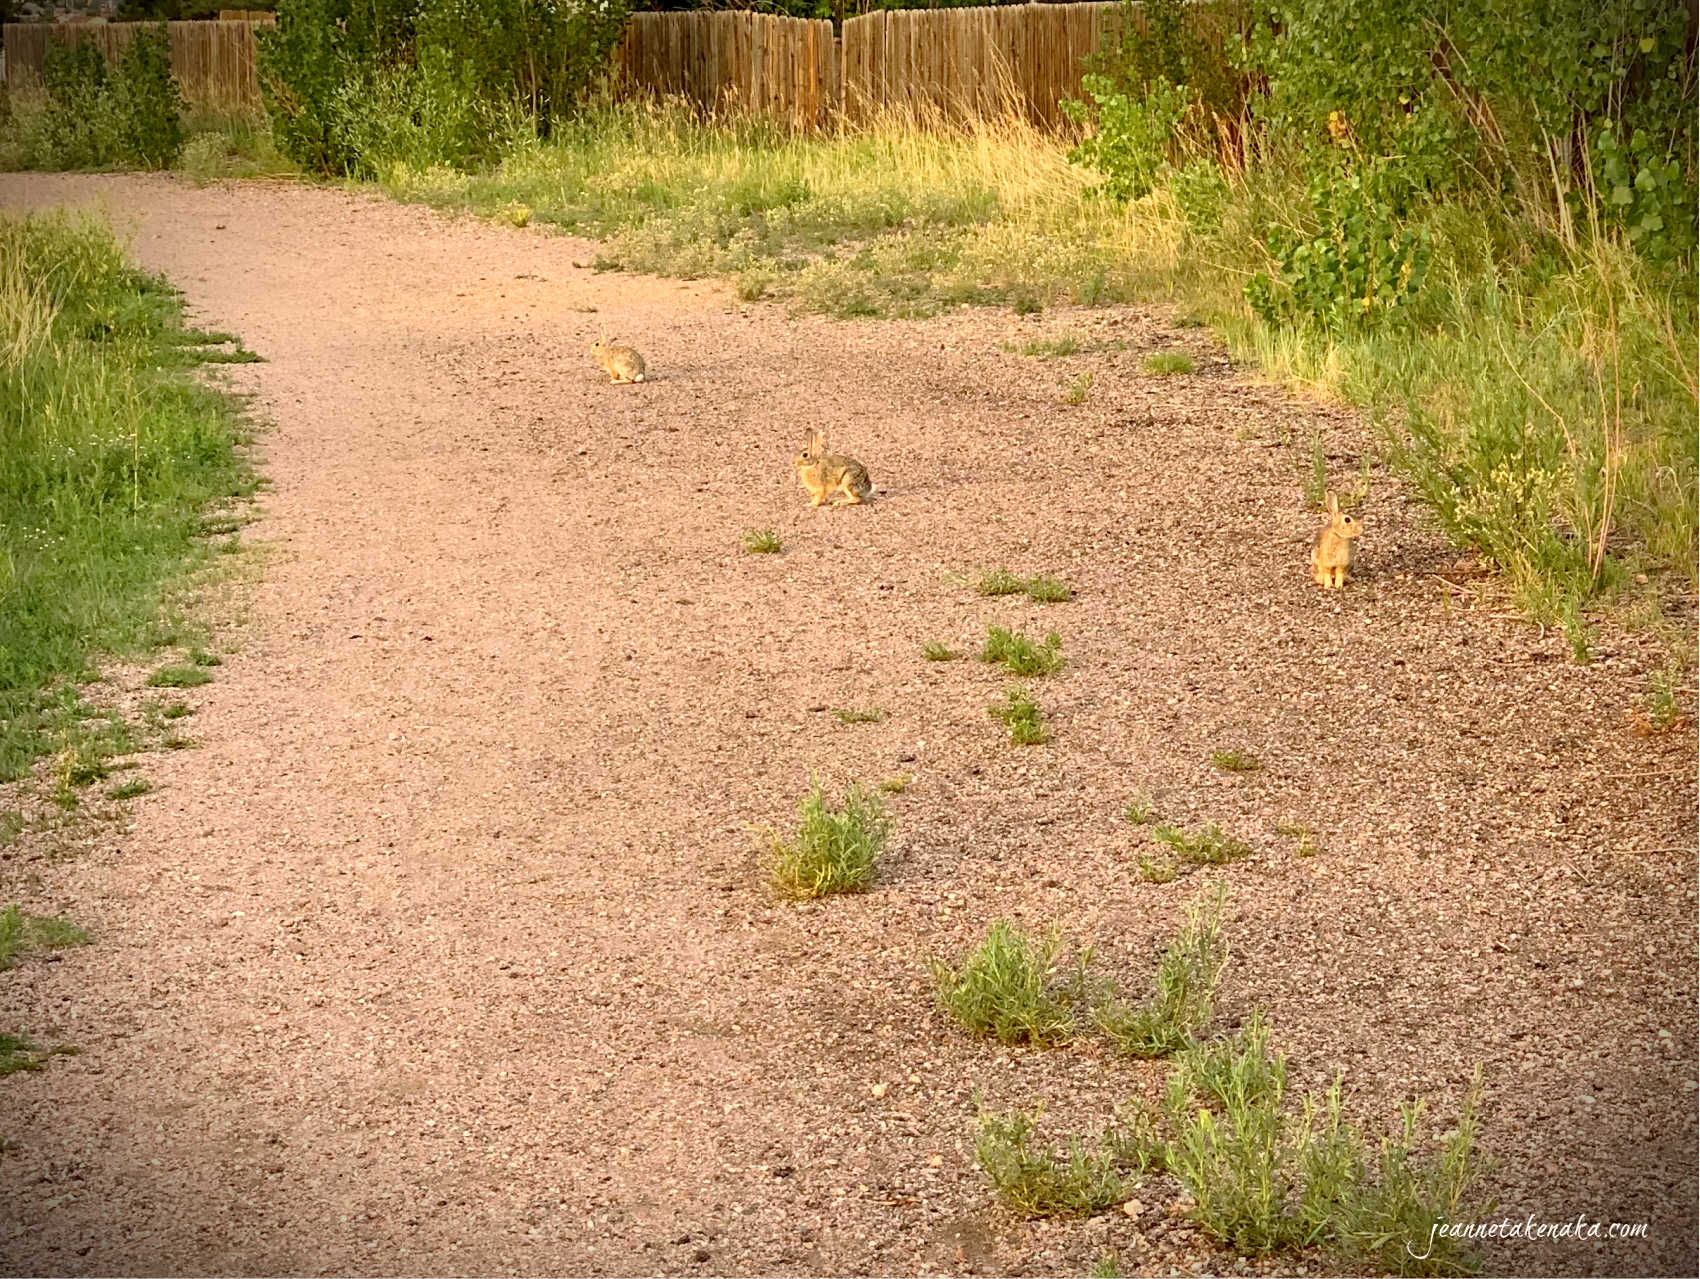 Three rabbits on a dirt trail deciding if they will flee